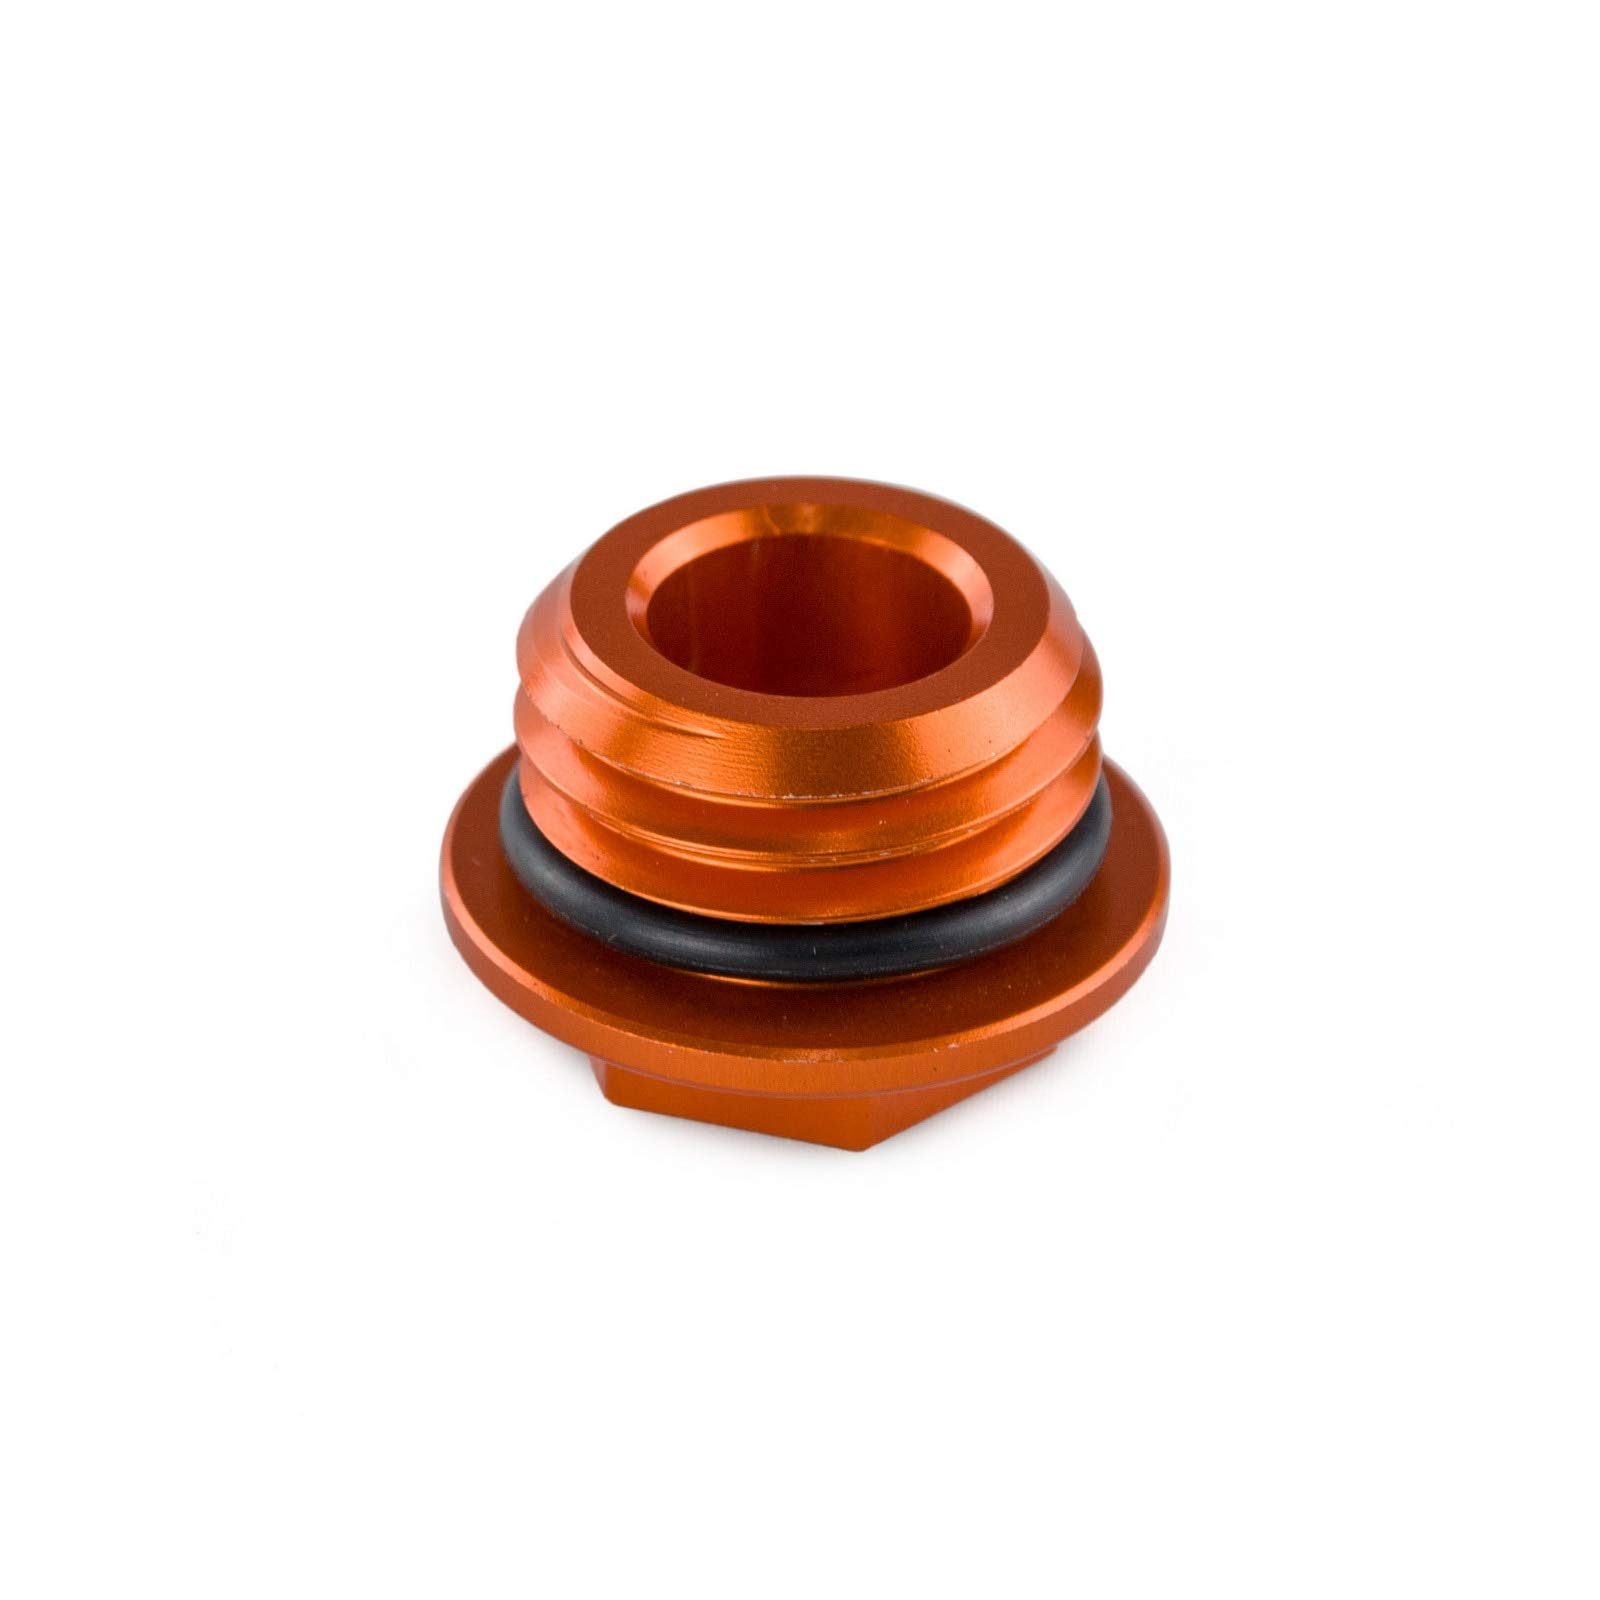 Water Pump Protector Clutch Cover Water Pump Guard Protector Oil Fuel Filler Cap for Motorcycle